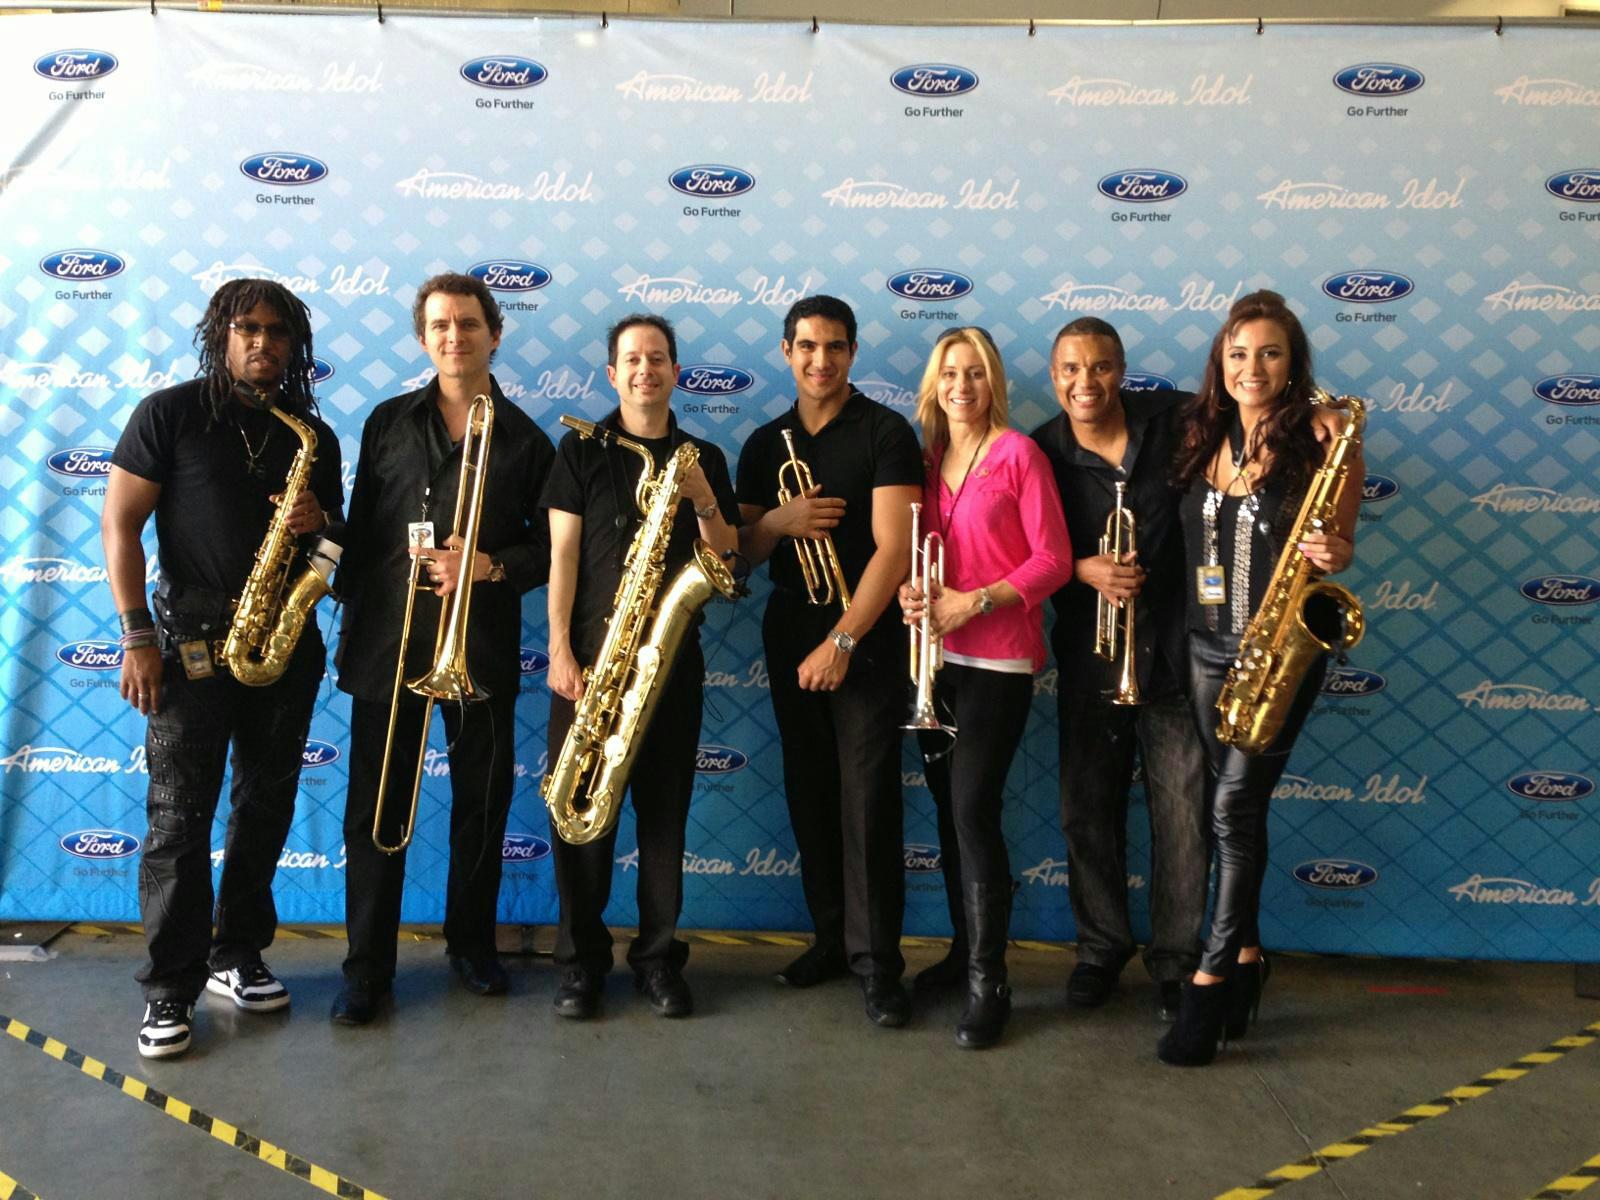 American Idol Horn Section